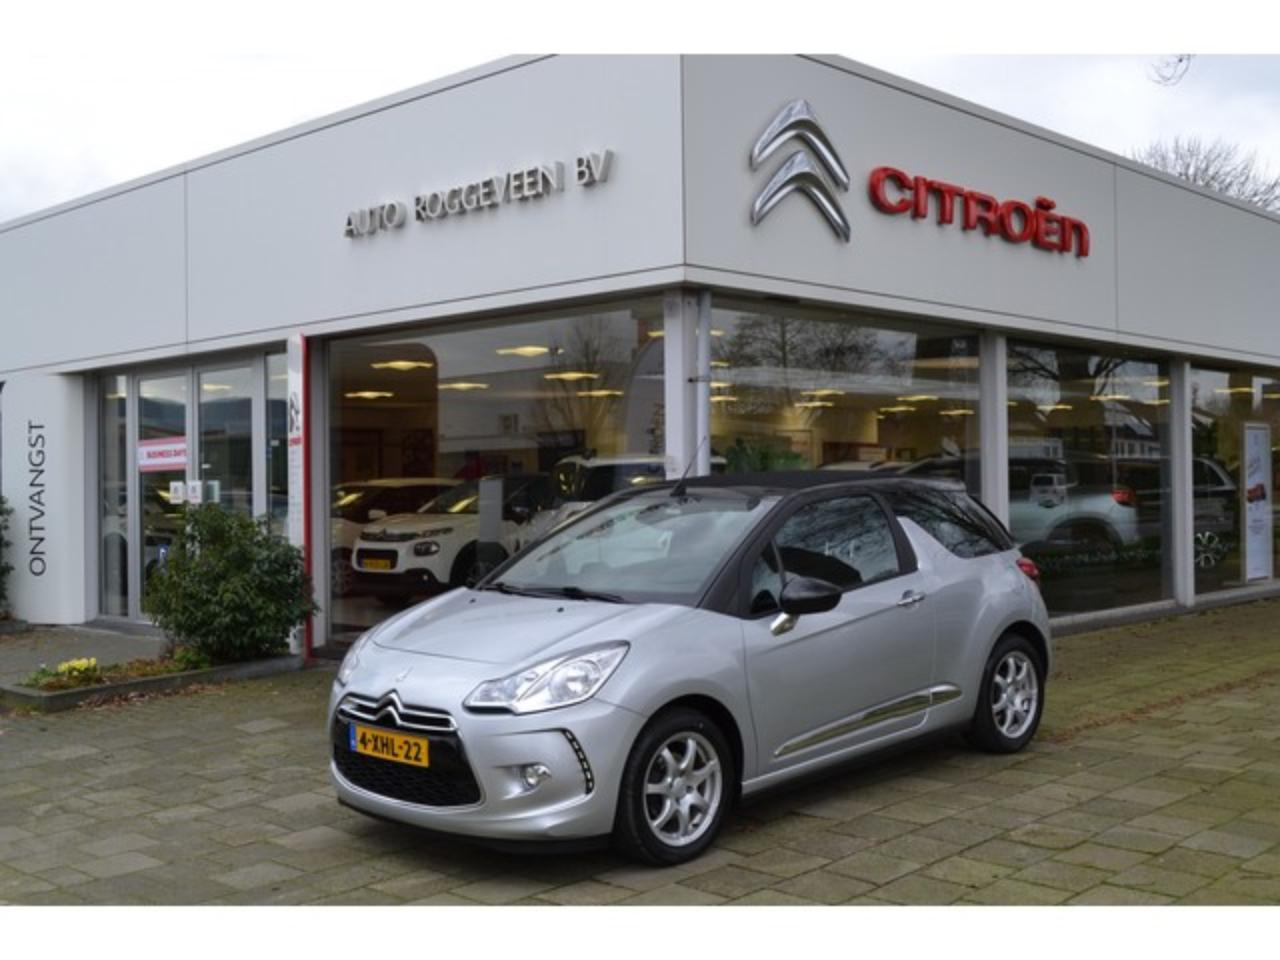 Ds DS 3 Cabriolet 1.2 VTi 82pk So Chic Navigatie, Pack Perfo, LM Vel